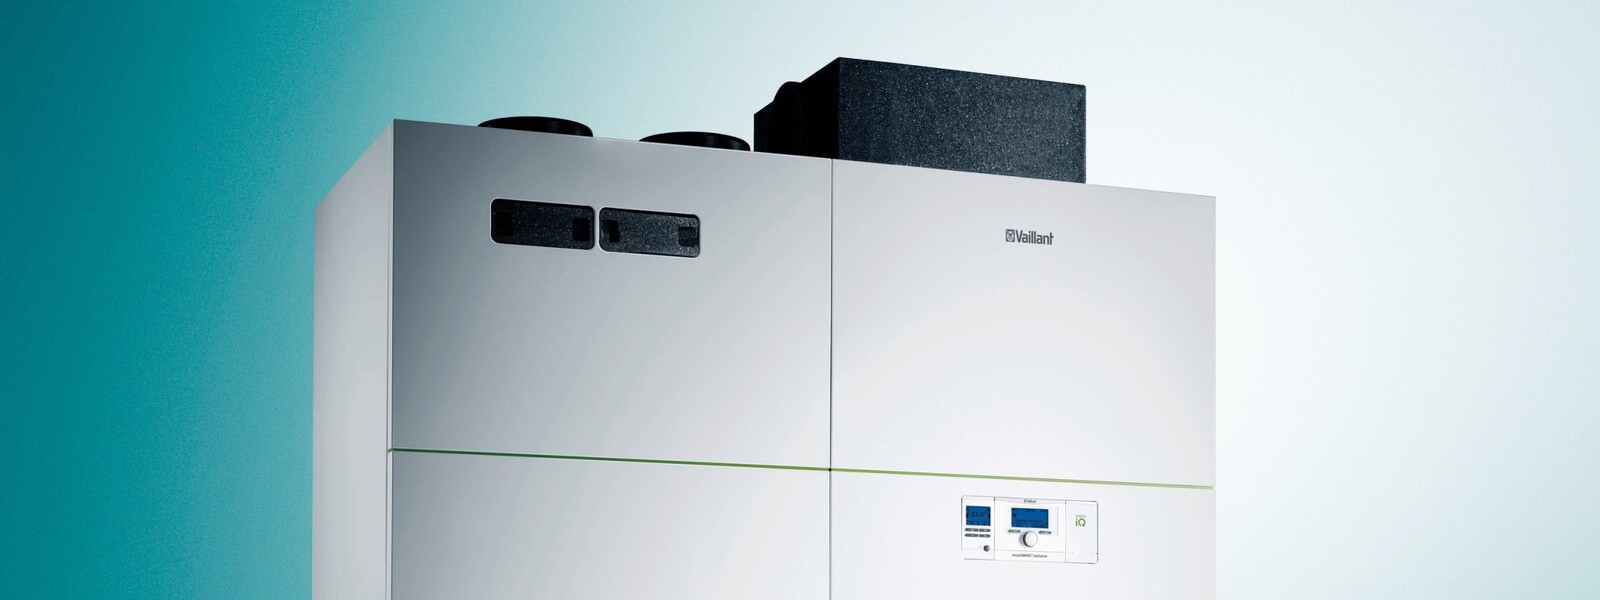 https://www.vaillant-group.com/newsroom/pressemitteilungen/2018/eroeffnung-waermepumpen-fertigung/2018-10-10-pb-einweihung-recocompact-fertigung-geraet-2-1336162-format-24-9@1600@desktop.jpg